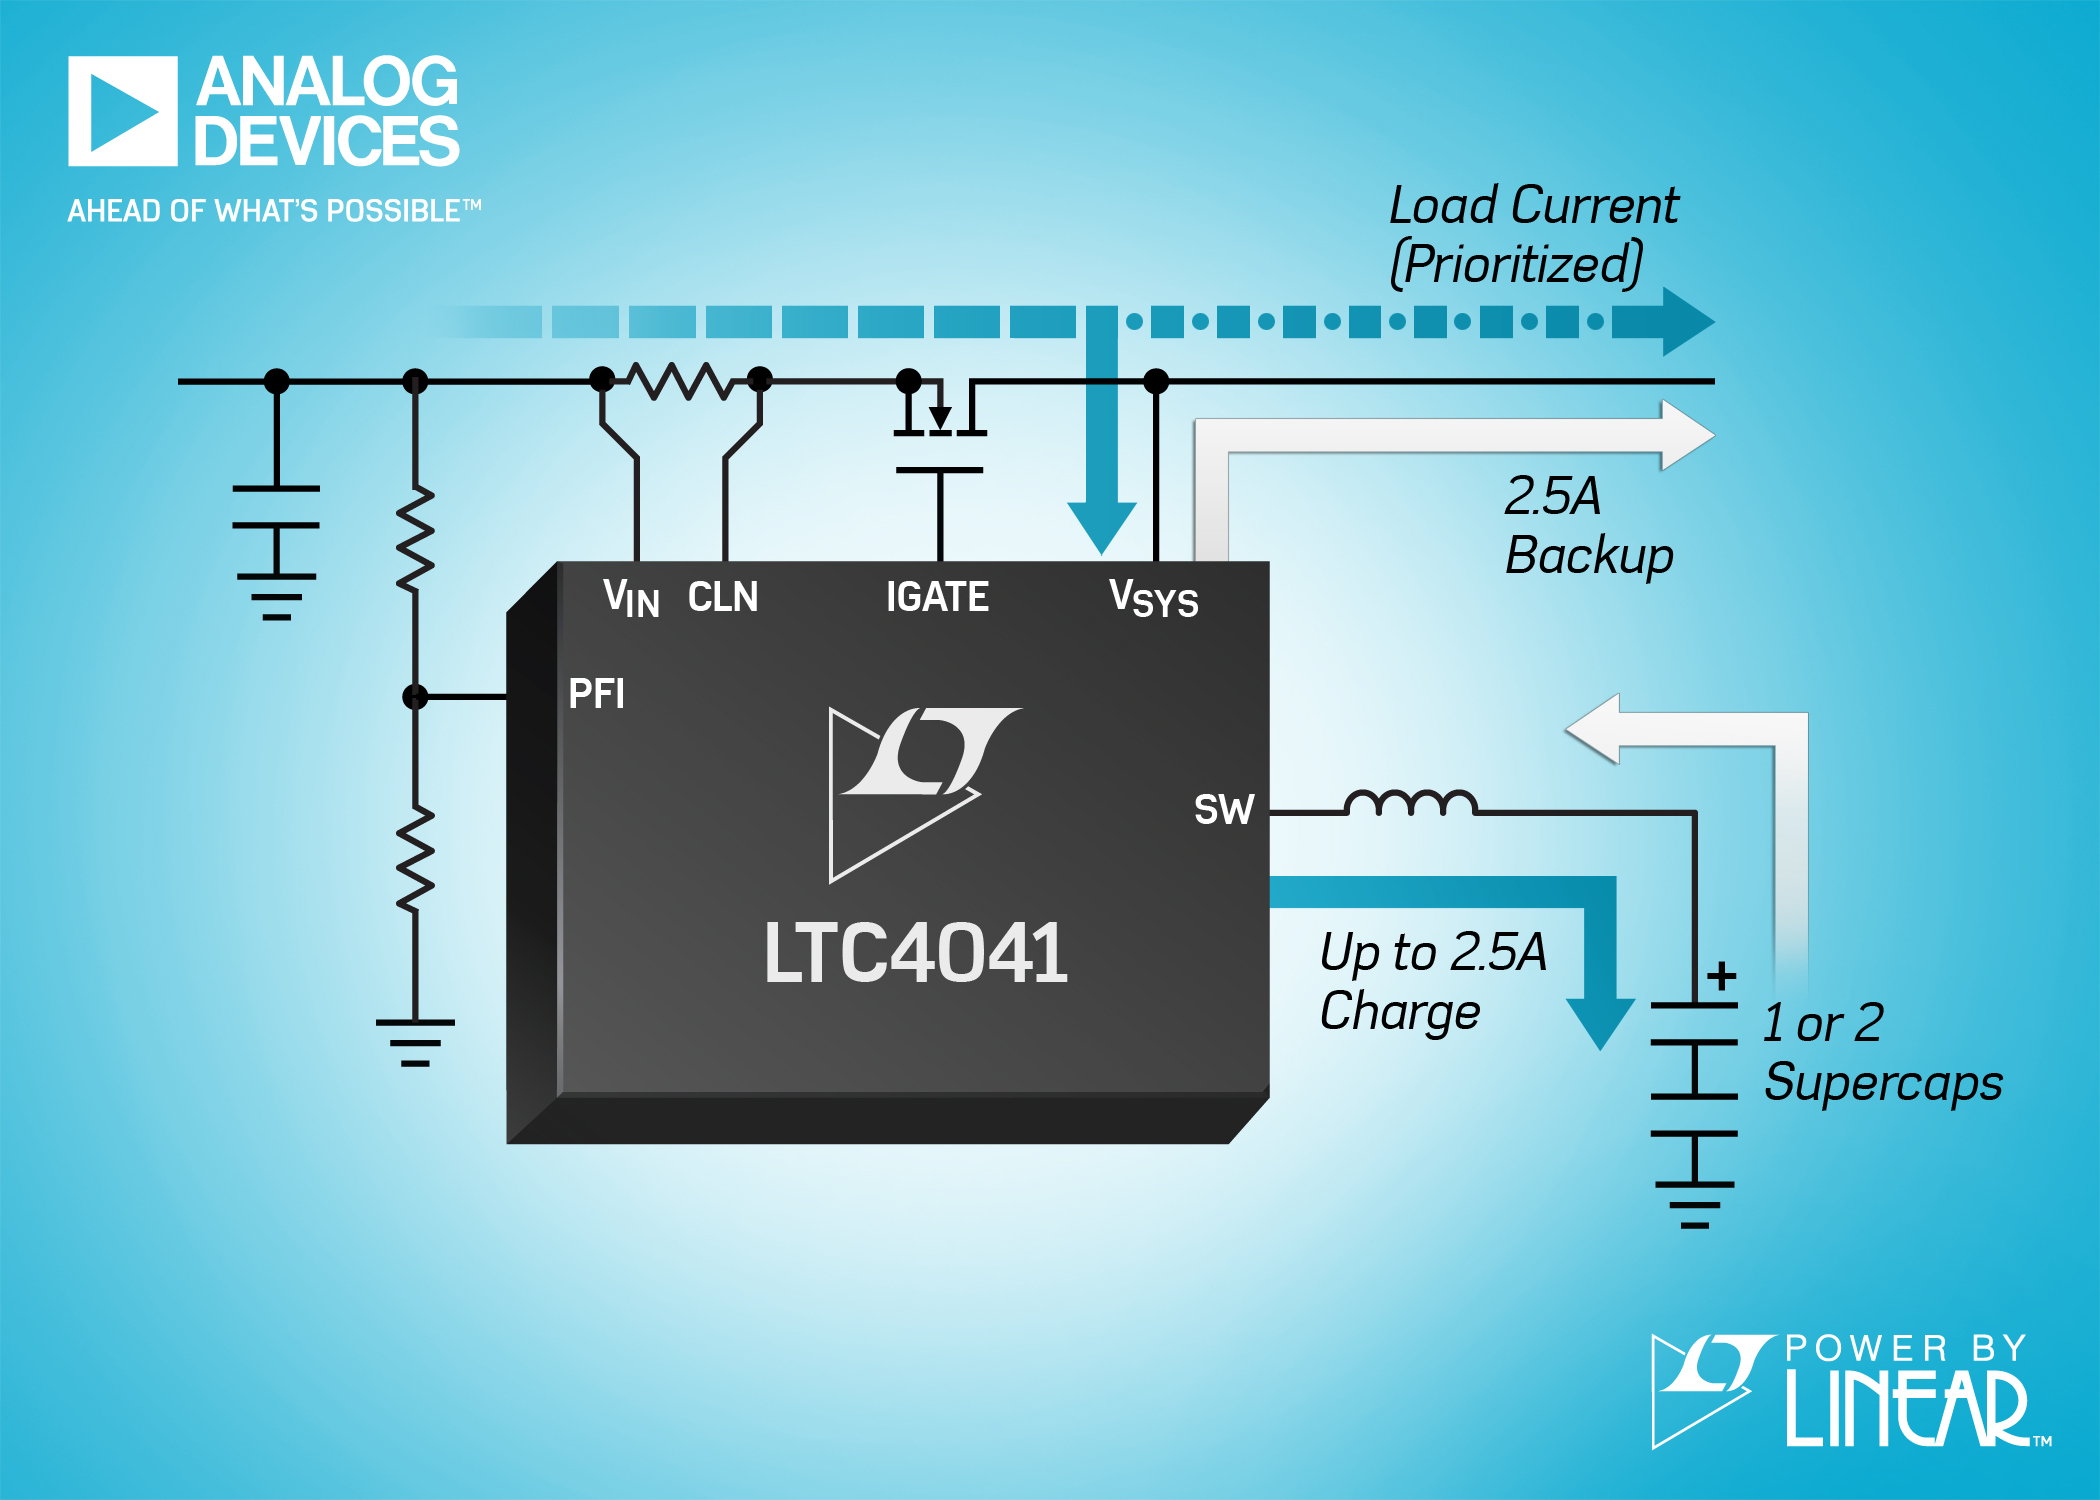 2.5A Backup Power Manager Provides High-Efficiency Charging